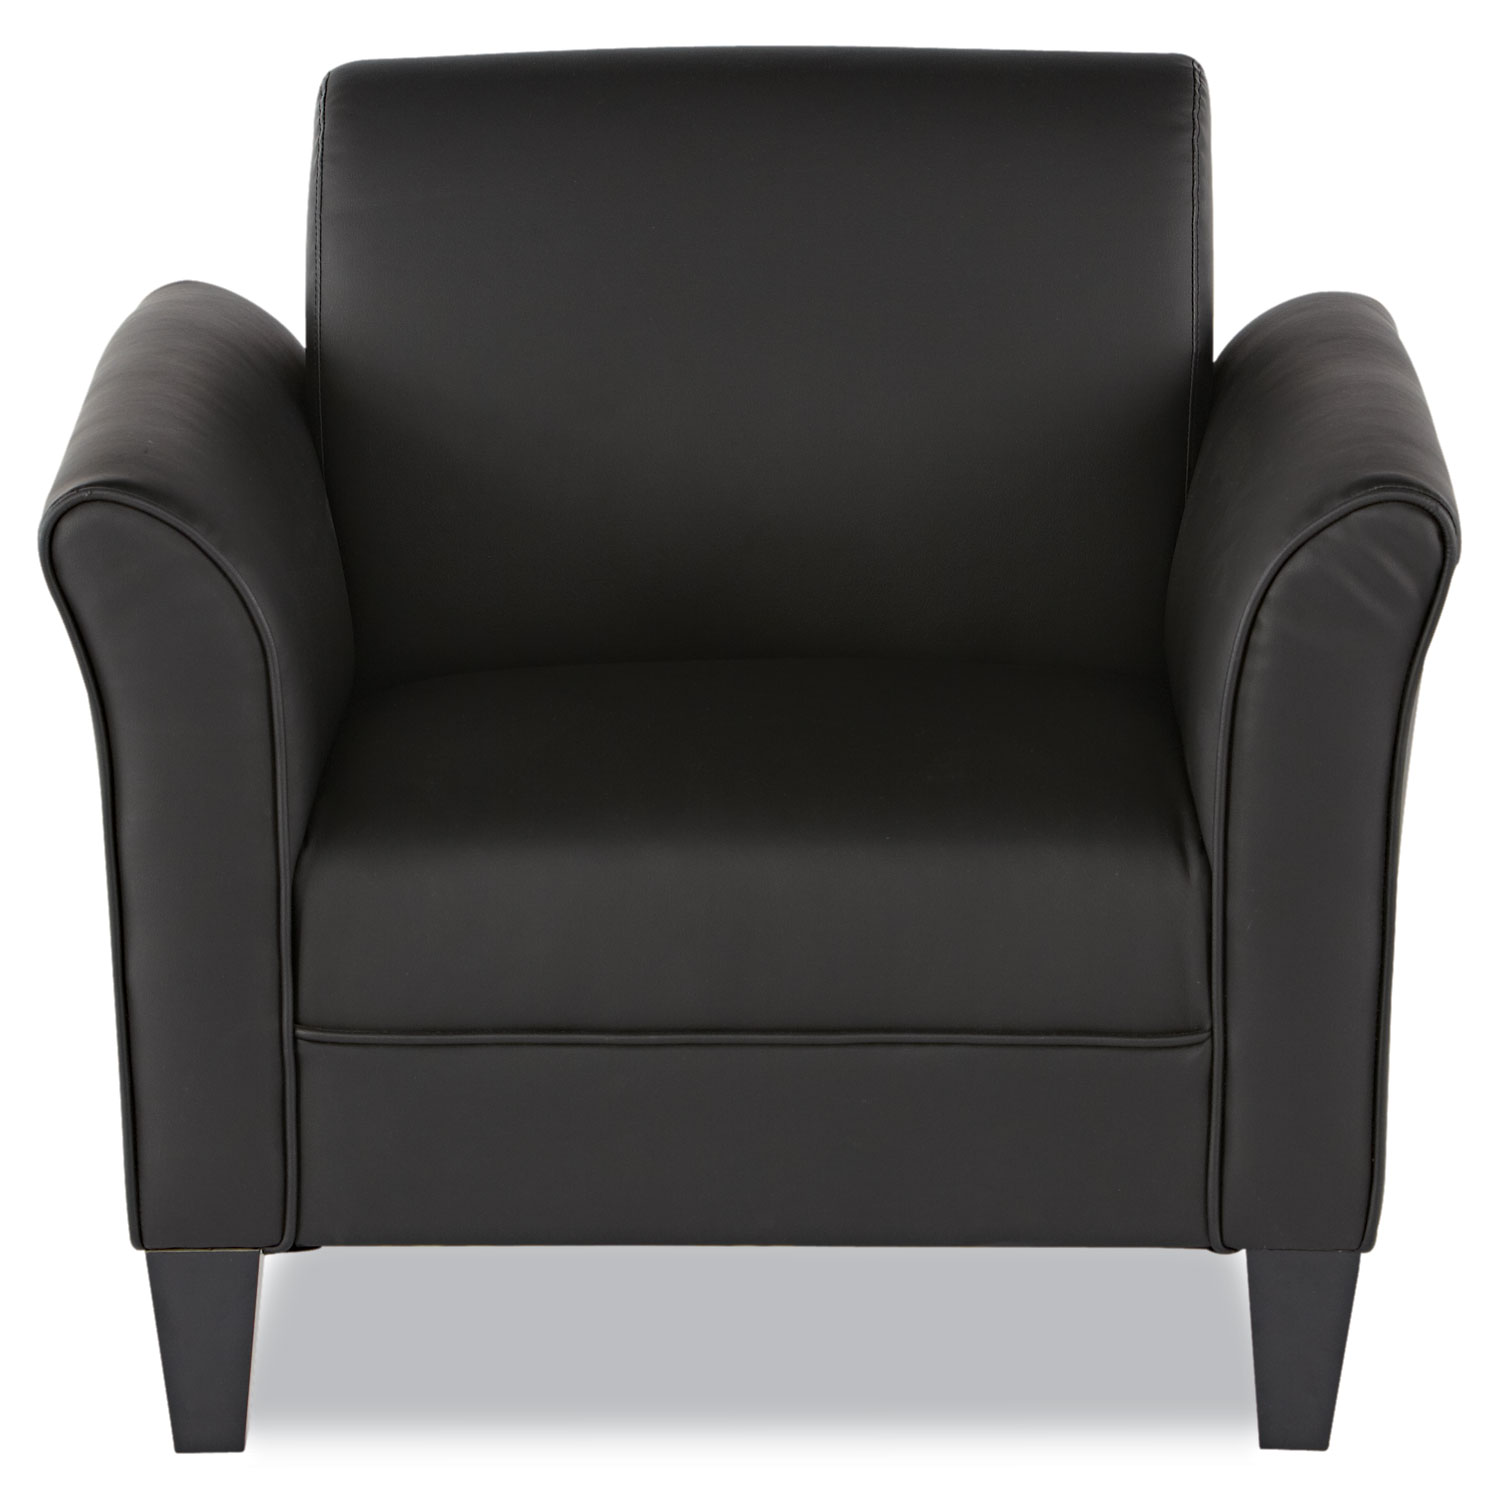 Alera Chair Alera Reception Lounge Series Club Chair By Alera